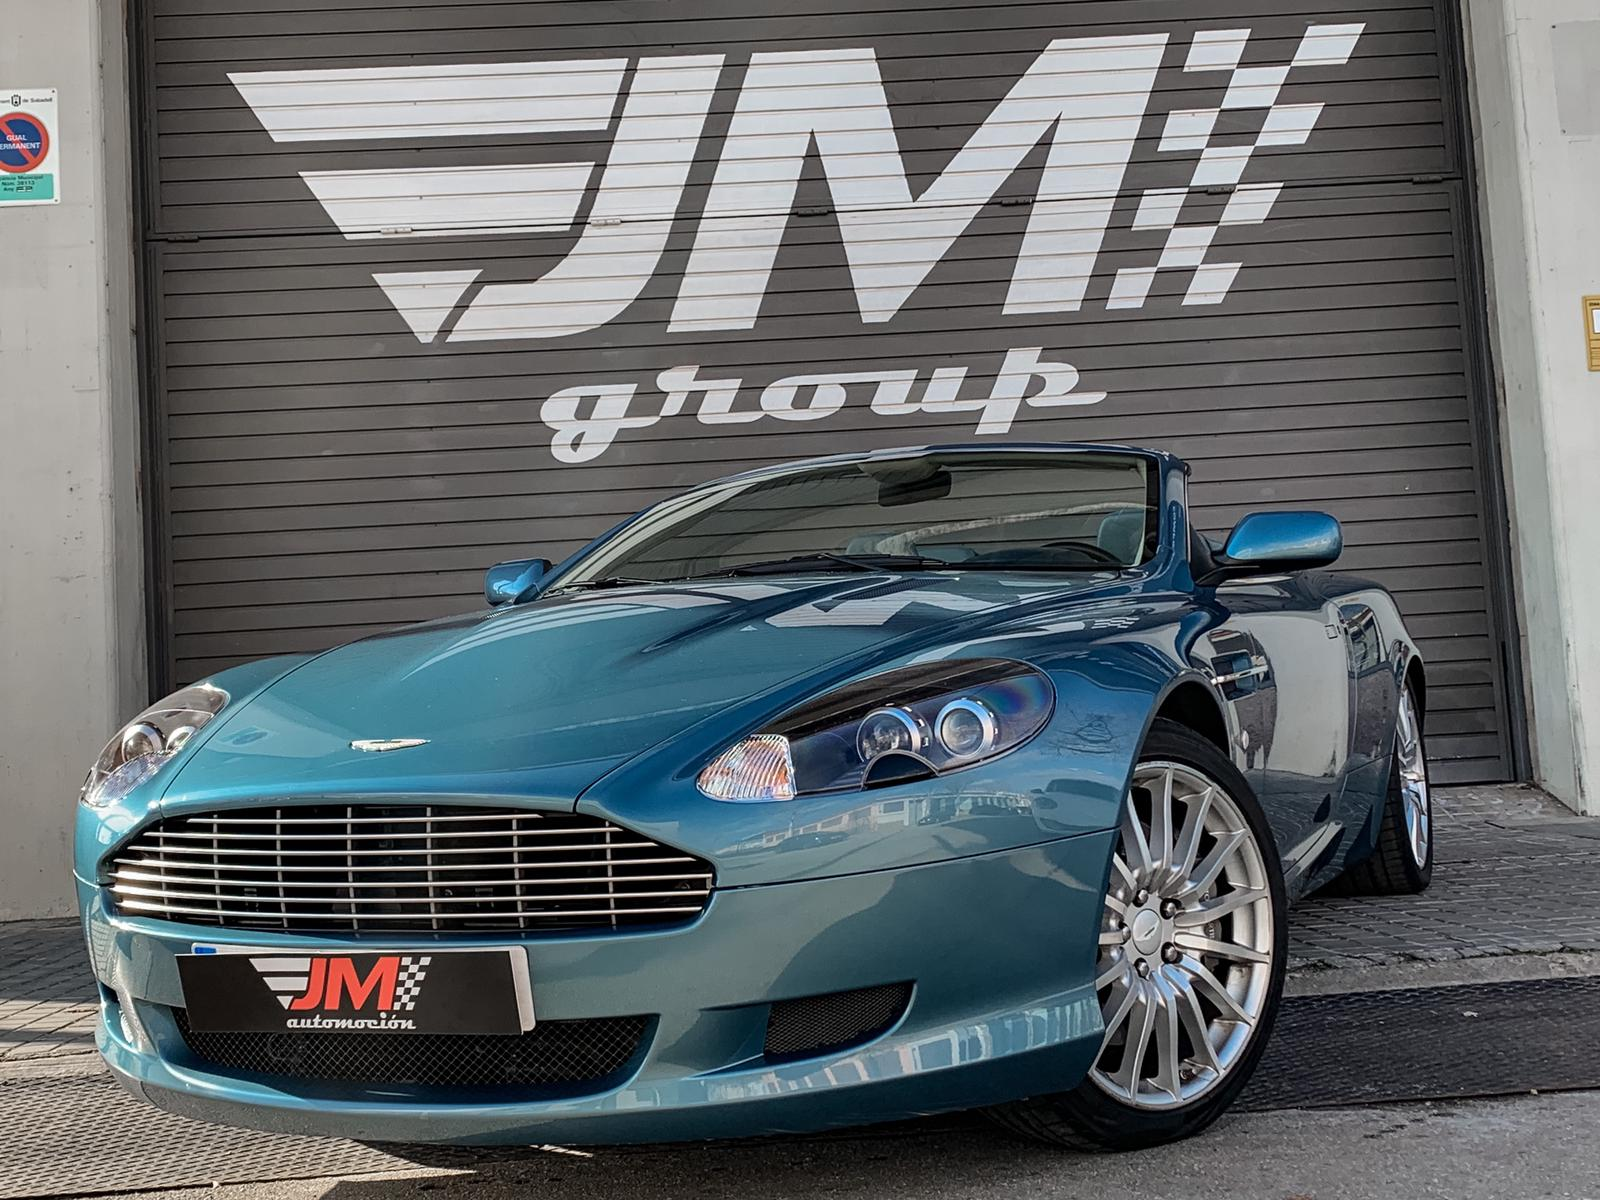 ASTON MARTIN DB9 VOLANTE -NACIONAL, IMPECABLE ESTADO-